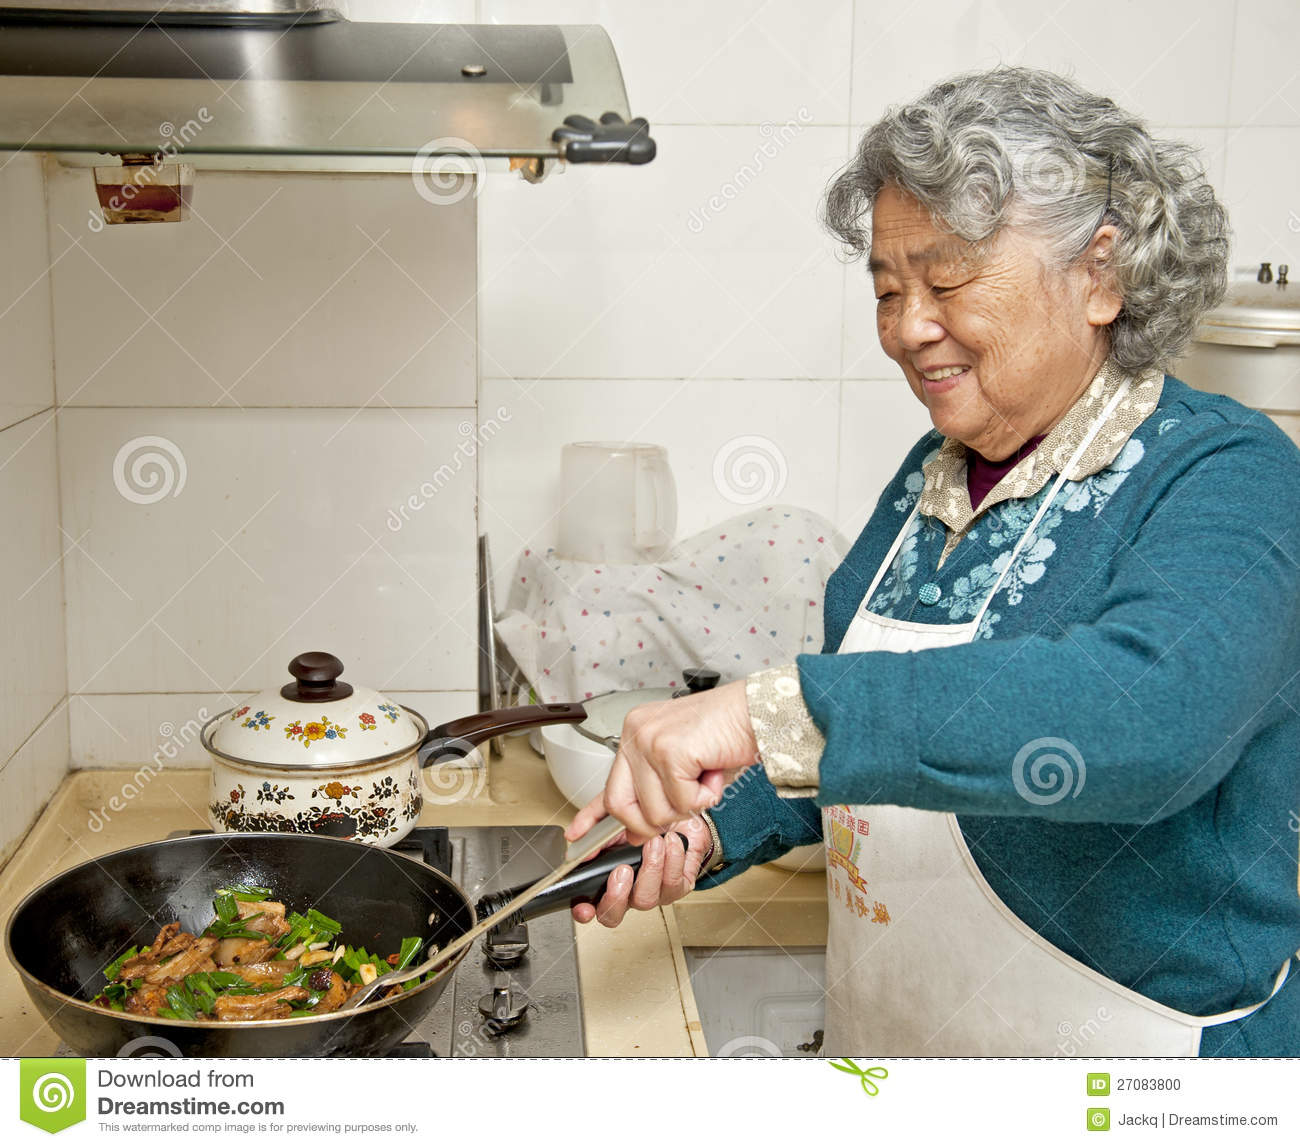 Grandmothers Kitchen: Cooking Grandmother Stock Photo